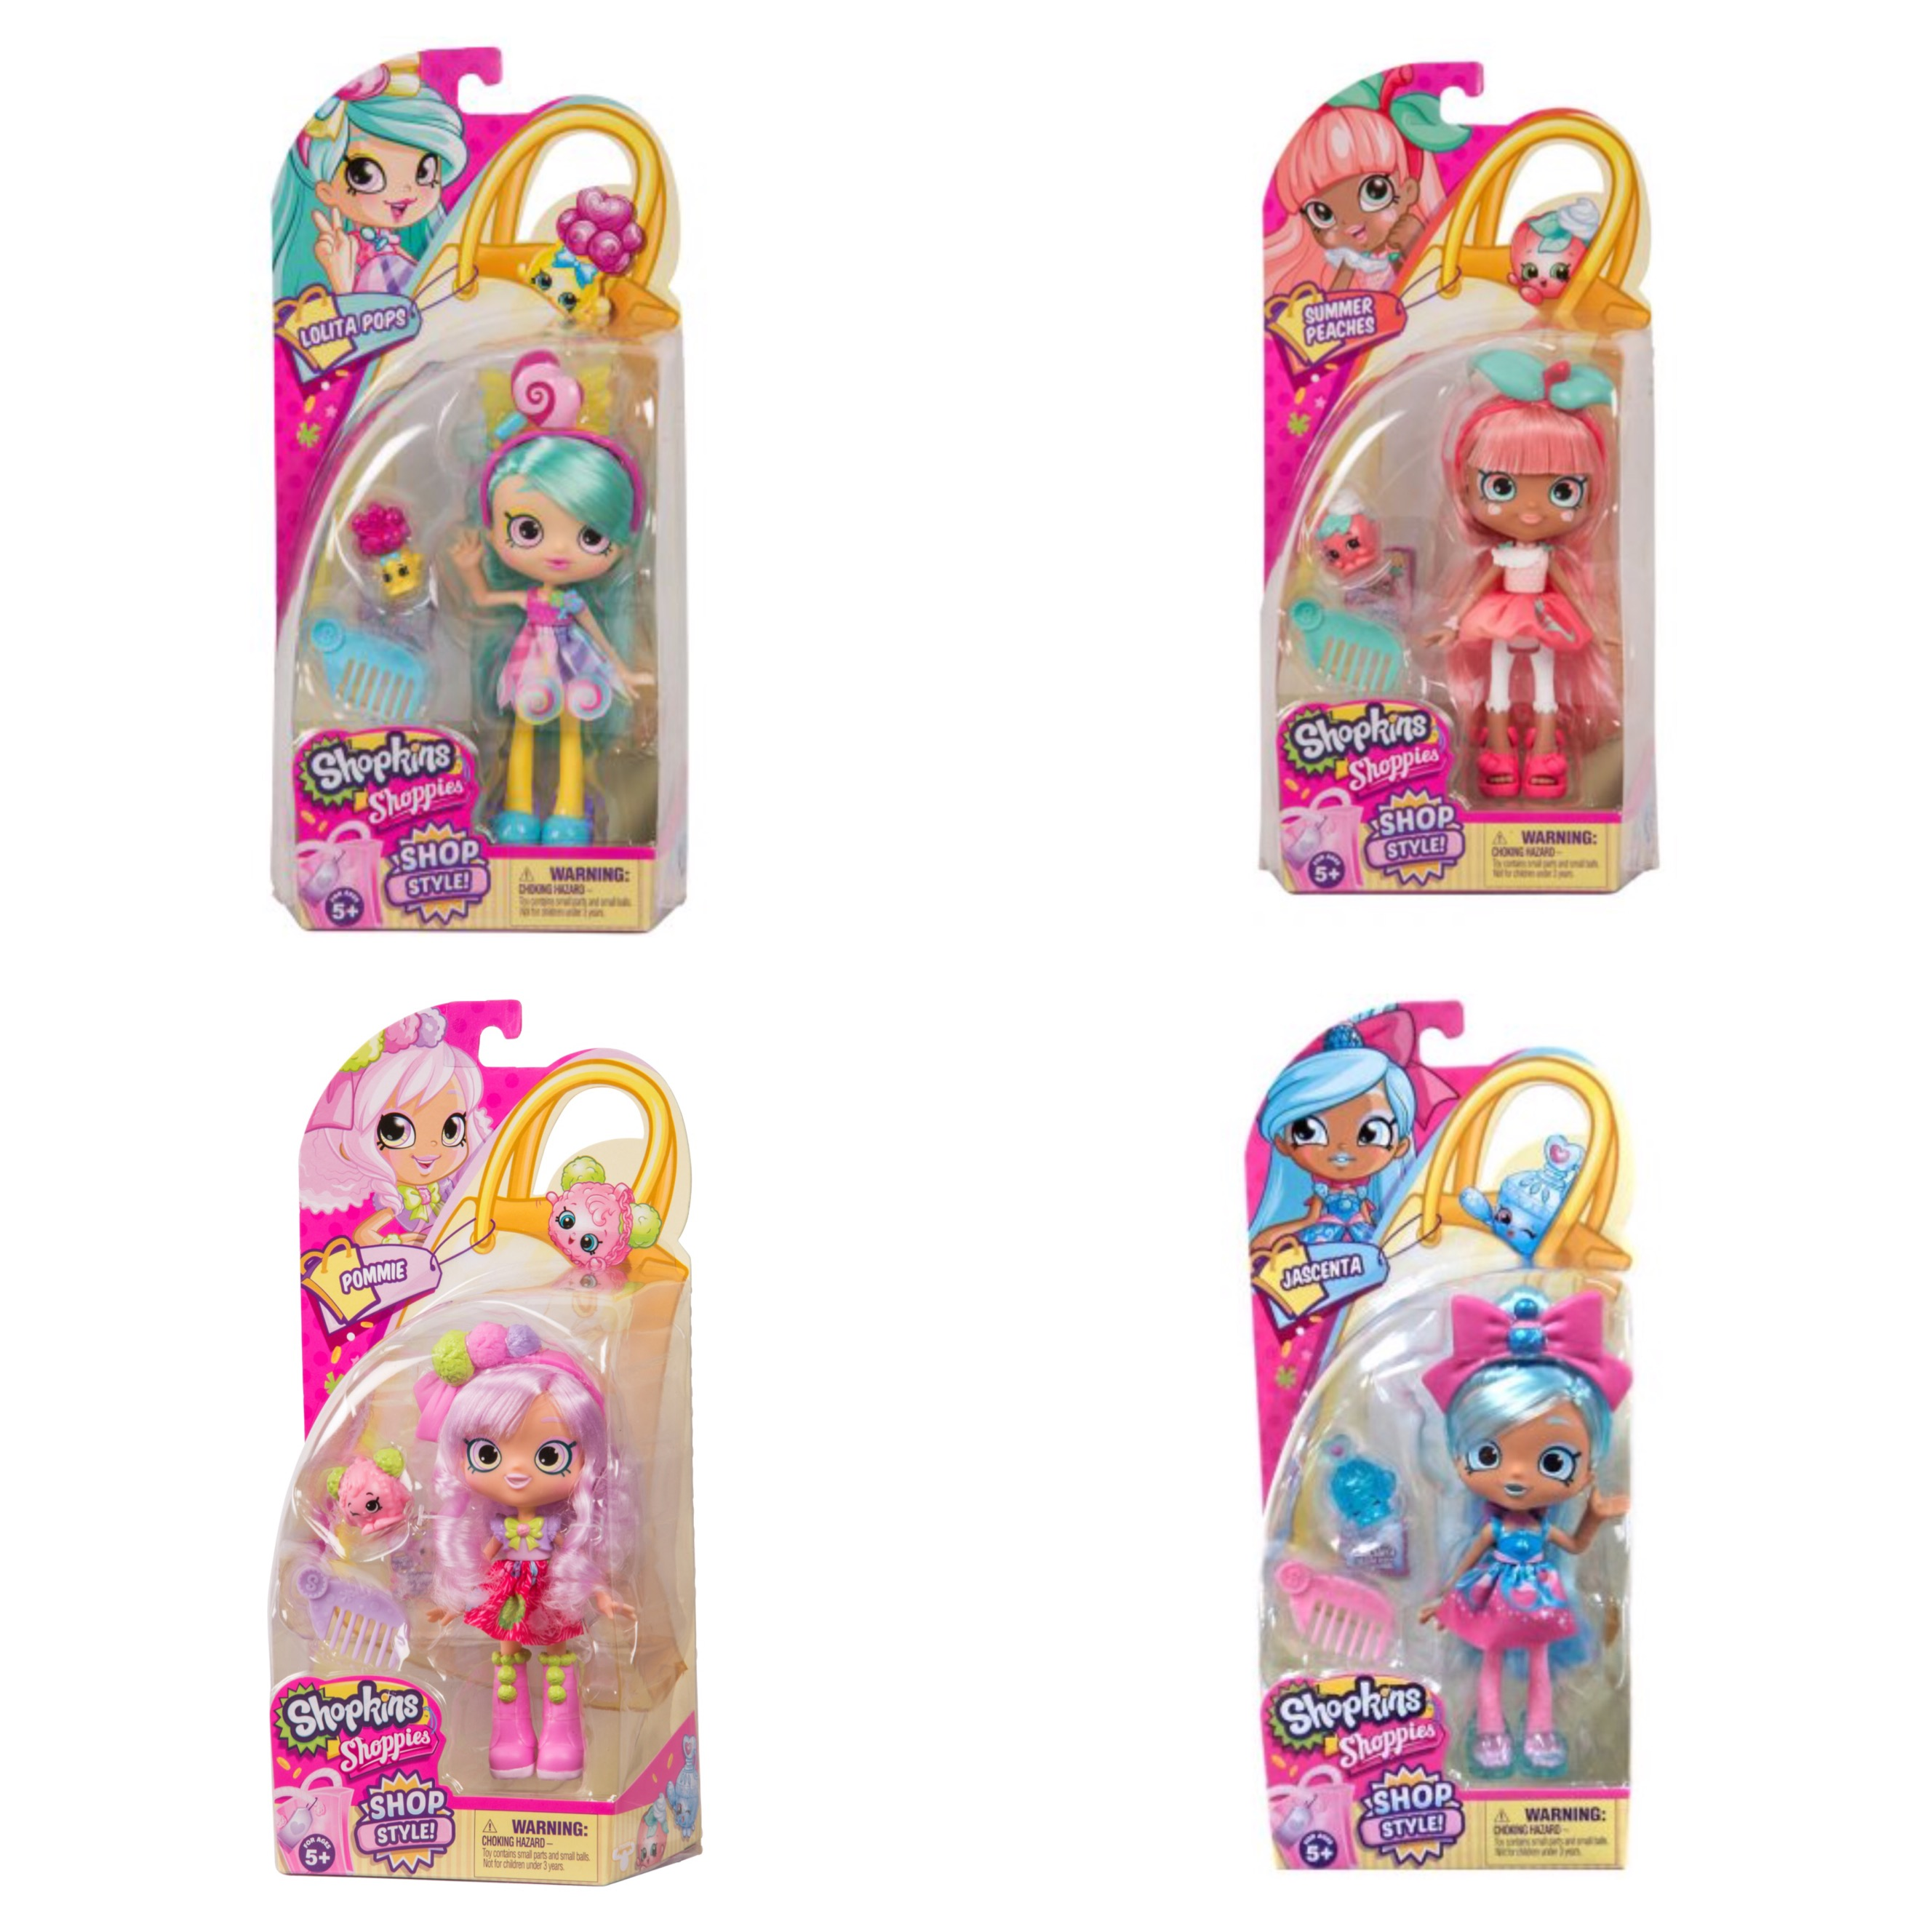 Shopkins Season 10 Shoppies Dolls Jascenta, Pommie, Lolita Pops and Summer Peaches Bundle